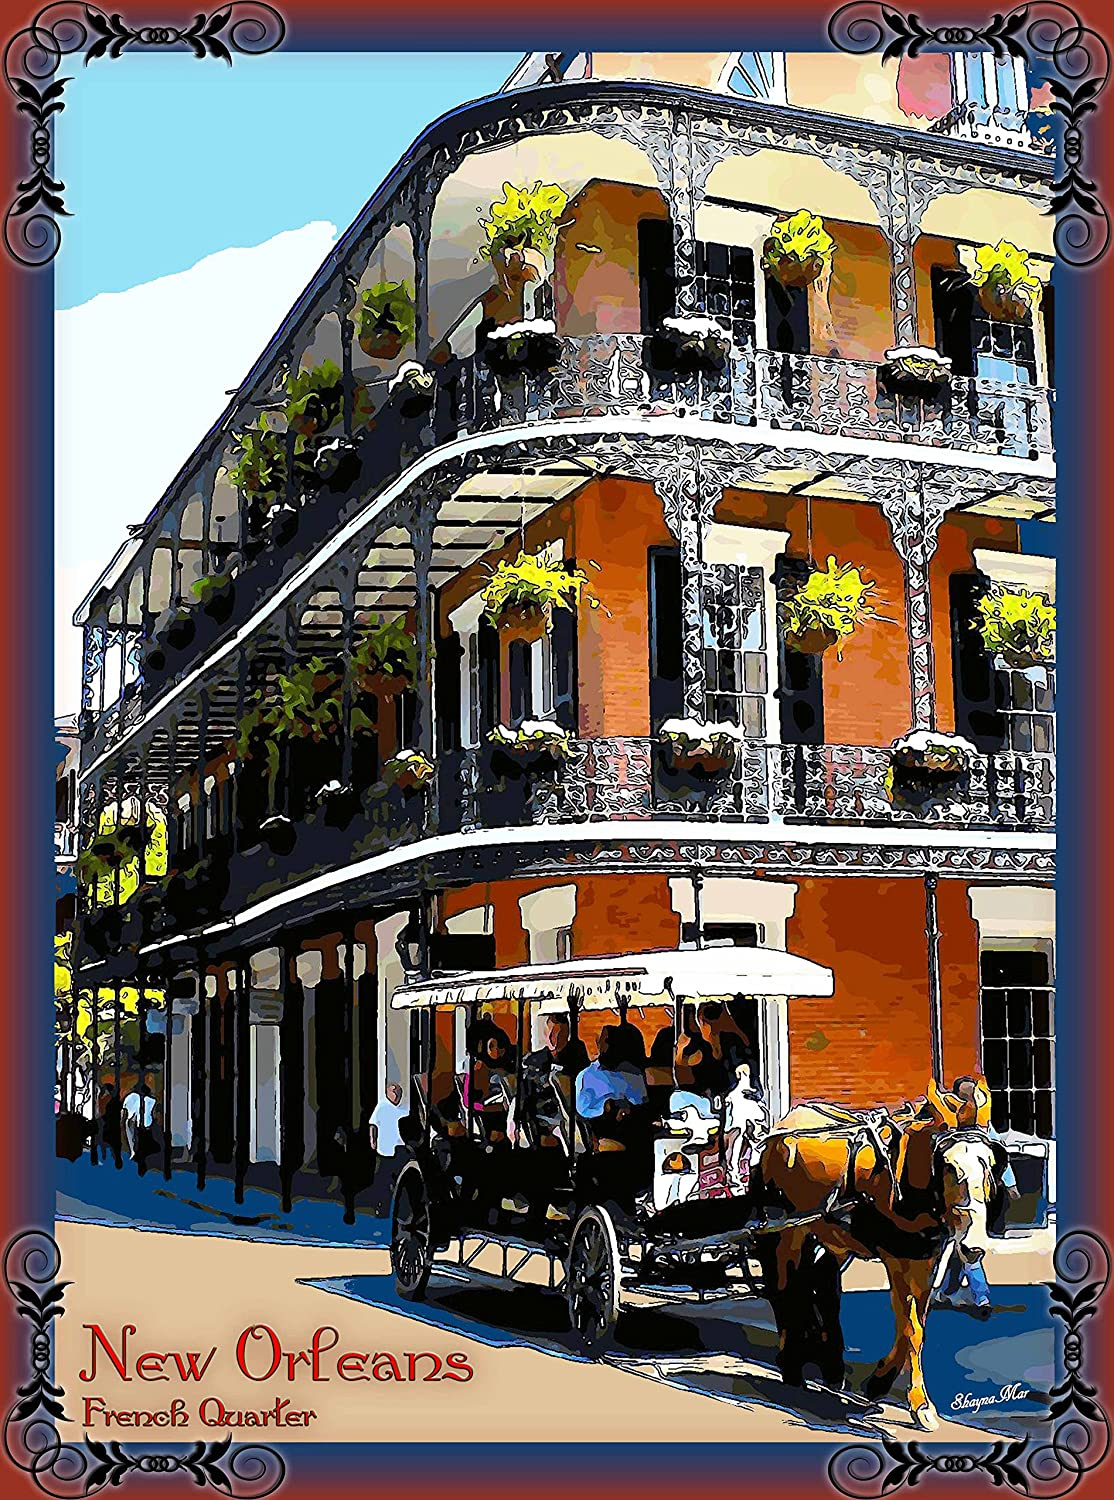 Amazon Com A Slice In Time French Quarter New Orleans Louisiana United States Of America Travel Advertisement Art Poster Print Poster Measures 10 X 13 5 Inches Posters Prints Central standard time (north america)cst. a slice in time french quarter new orleans louisiana united states of america travel advertisement art poster print poster measures 10 x 13 5 inches